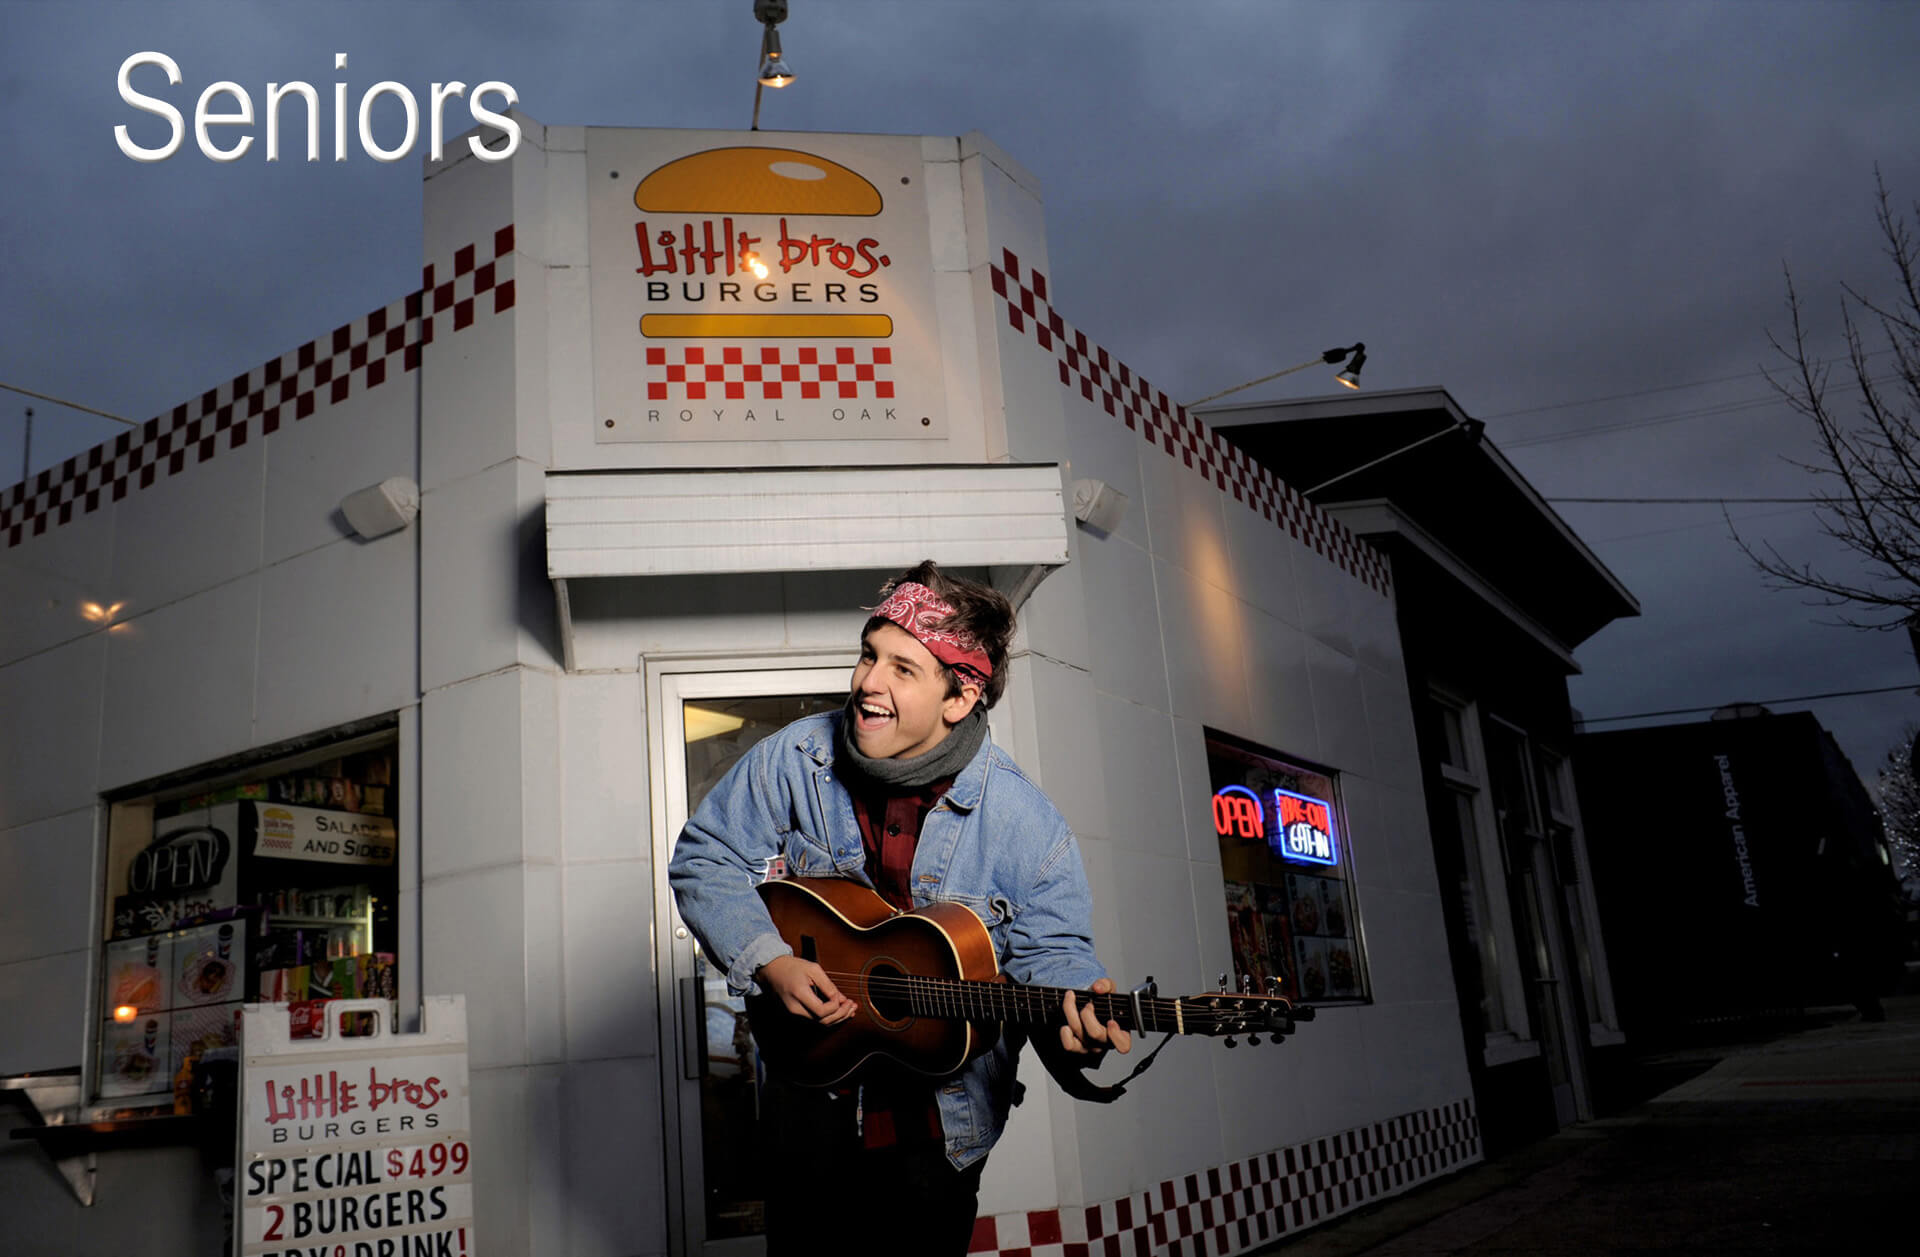 A Royal Oak, Michigan senior jams on his guitar in front of his favorite hamburger joint during his senior photo shoot.